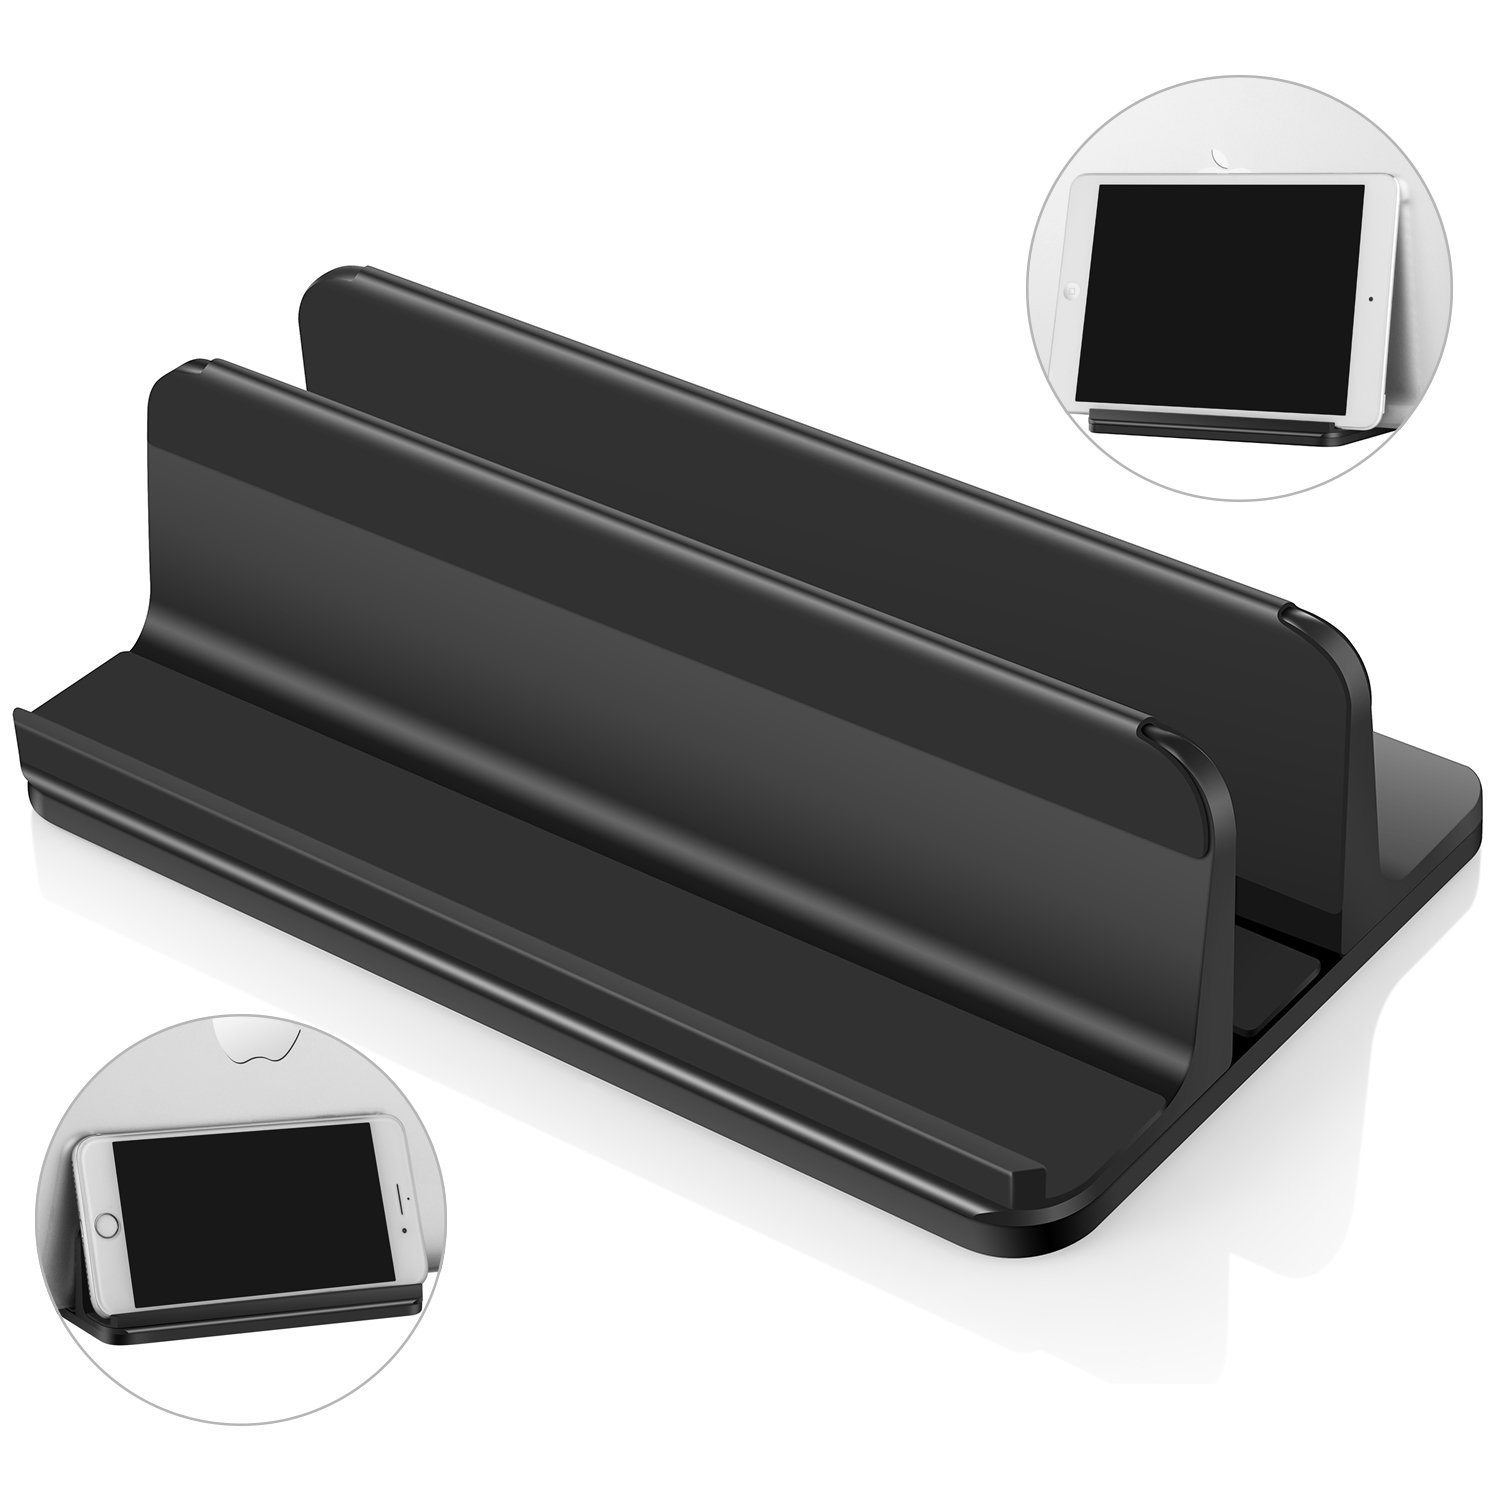 Vertical Laptop Stand for All Notebooks, Adjustable Desktop Holder Stand for Cell Phone, Tablet, HP, MacBook Air, MacBook Pro, Multifunctional, Anti-Scratch, Black